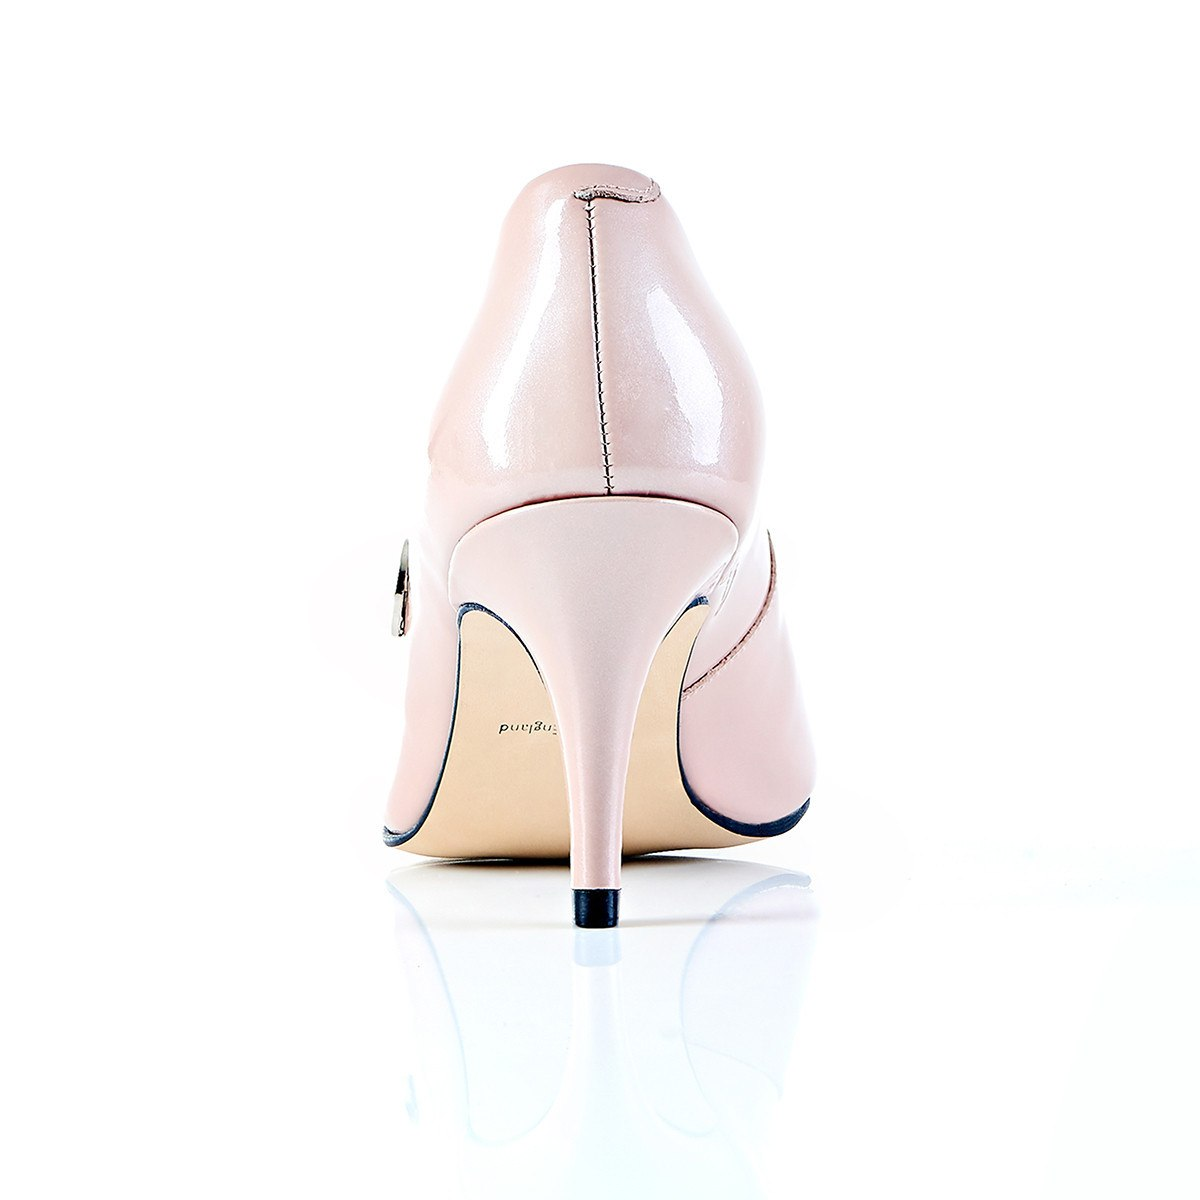 Take My Lead - 18 Hour Heels - Blush Leather - Shoes by Shaherazad